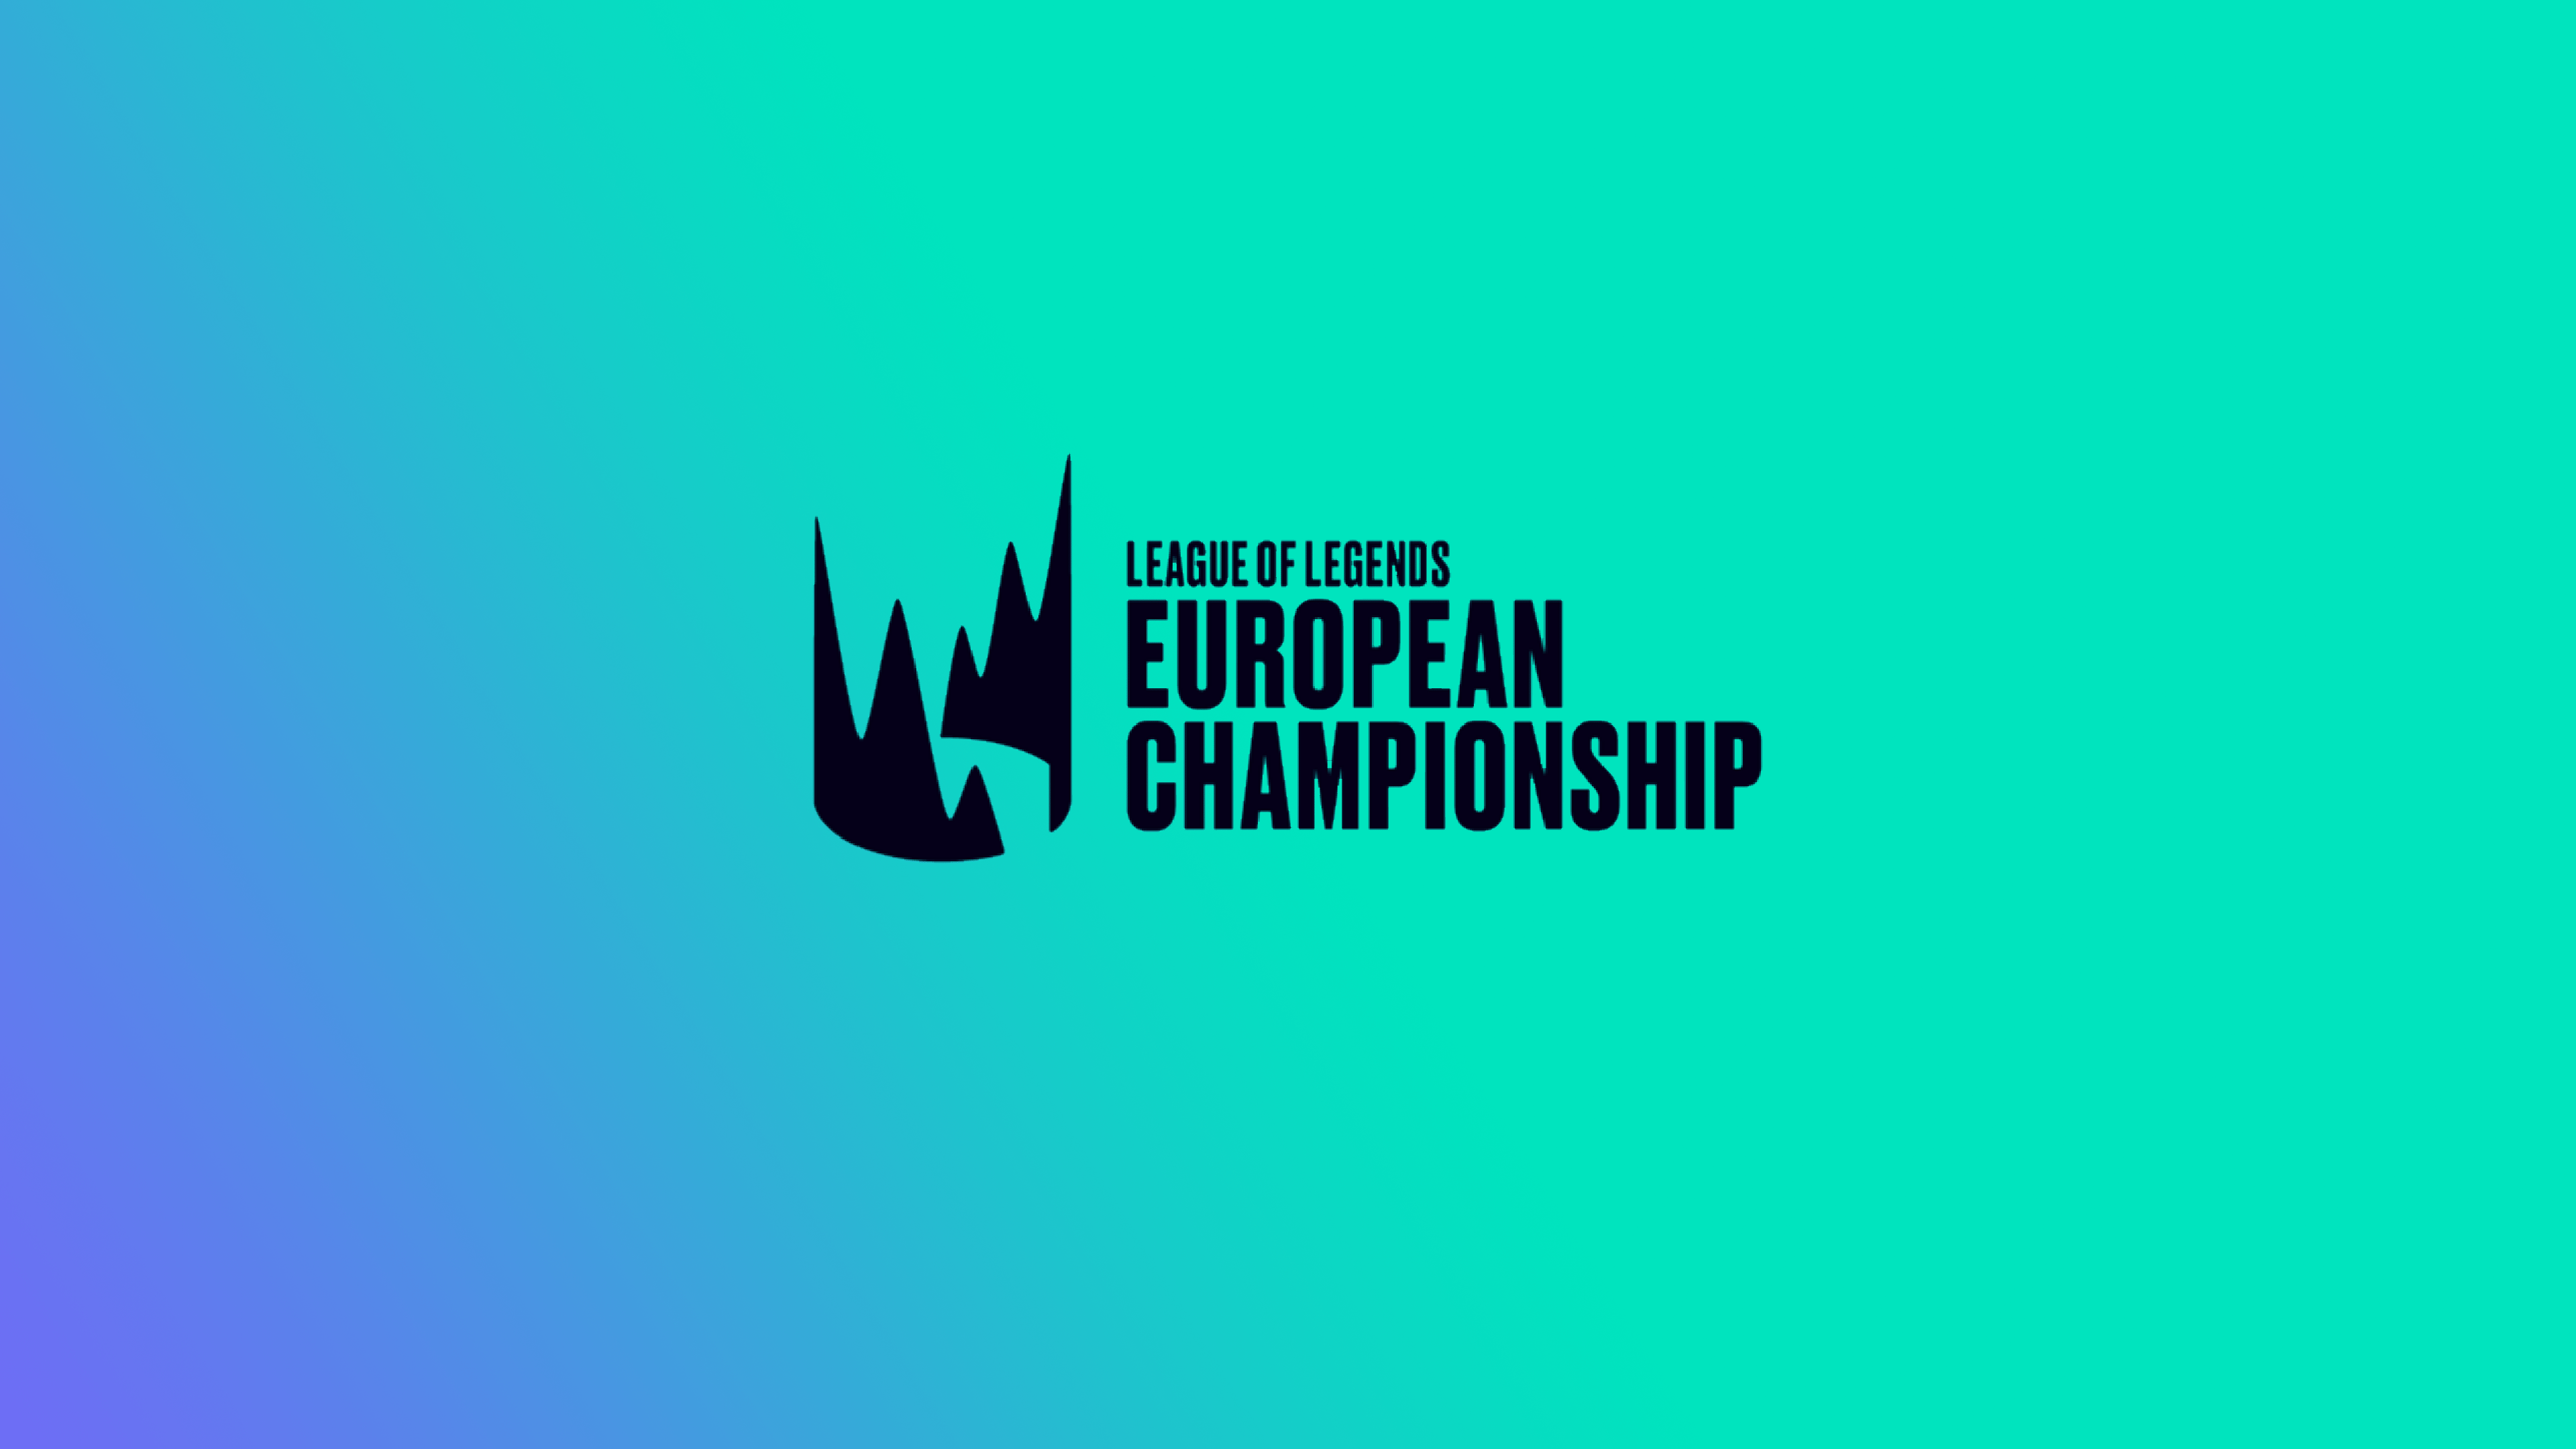 LEC – Schalke04 Extended Mid Laner Abbedage's Contract Following A Stellar Performance In LEC 2020